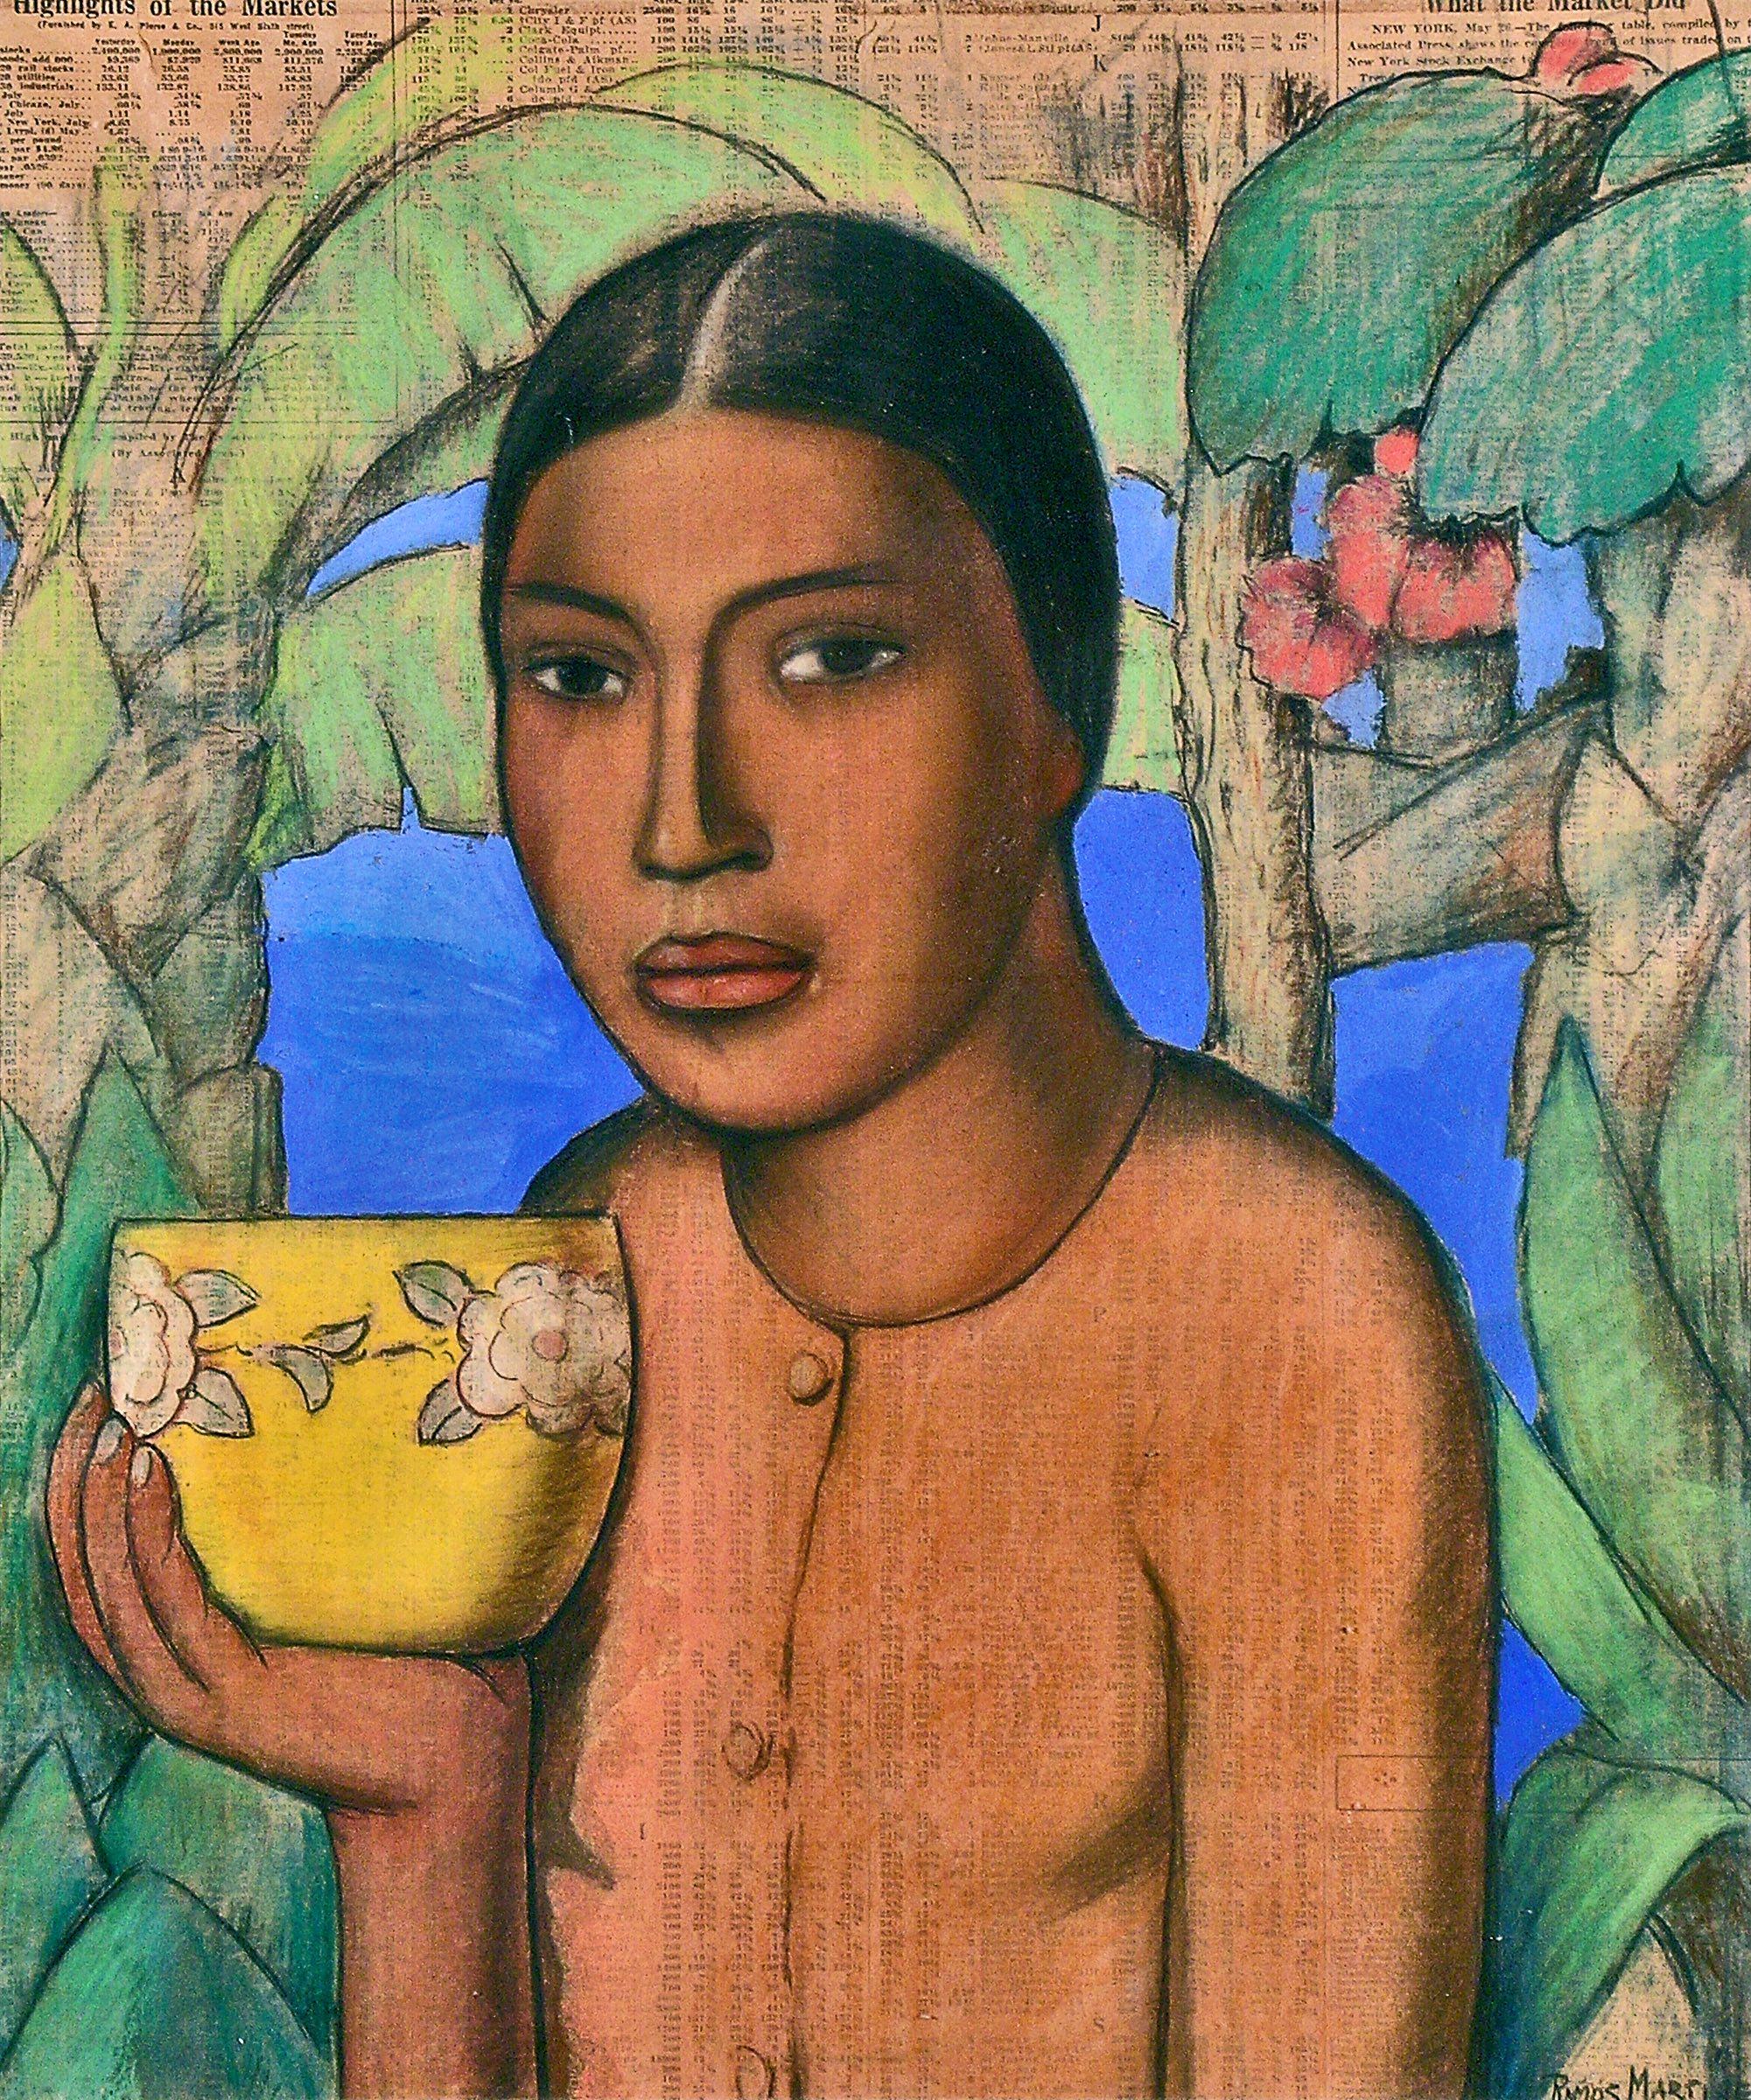 India con Tazo   /Indian Woman with Bowl  ca. 1930 pastel and tempera on newsprint /pintura al pastel y temple pastel sobre papel perióco 18.3 x 15.3 inches; 46.4 x 38.4 centímetros Private collection